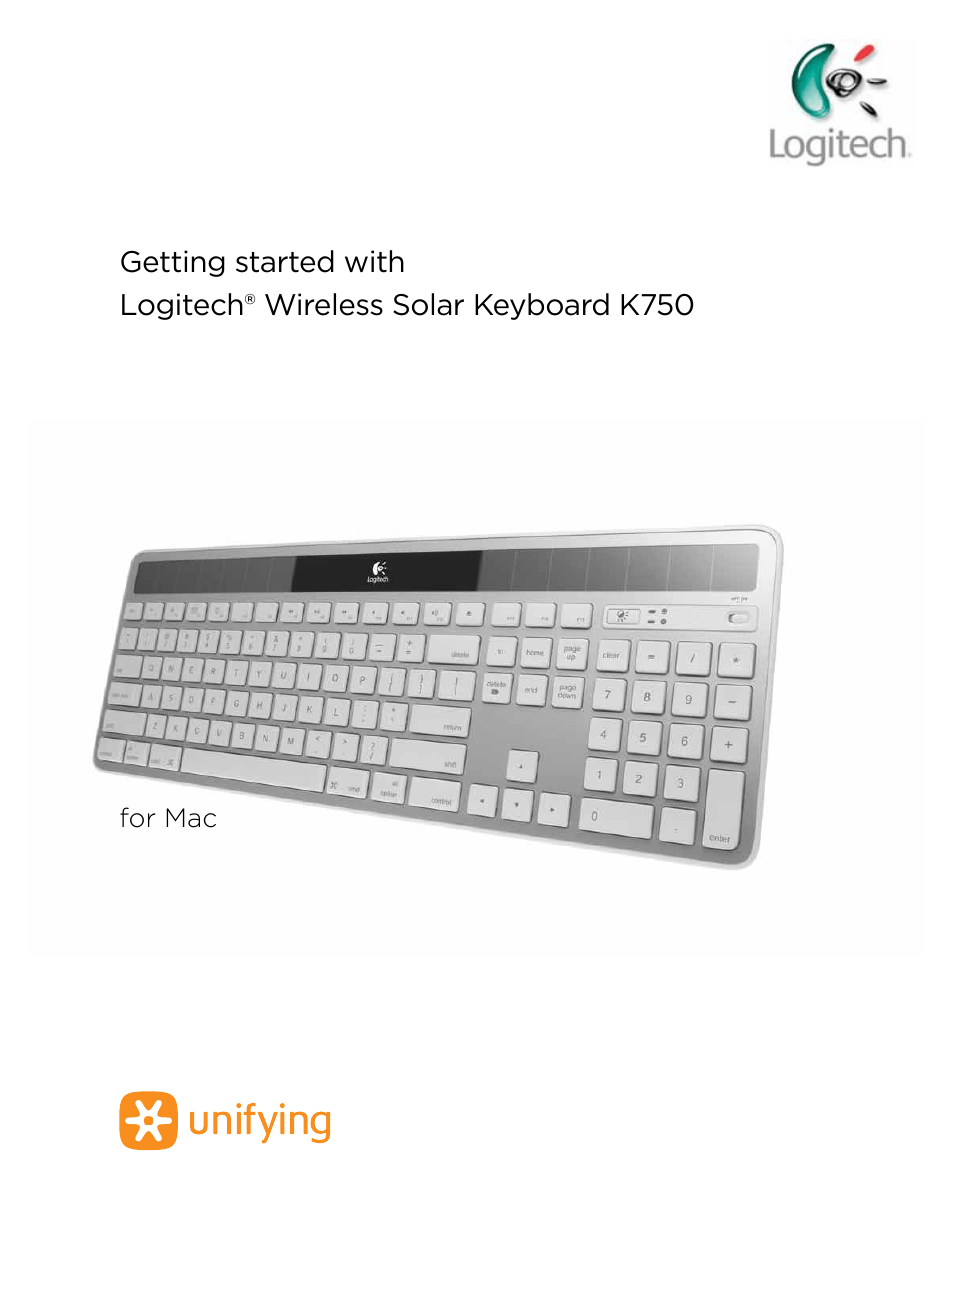 Logitech Wireless Solar Keyboard K750 User Manual 20 Pages